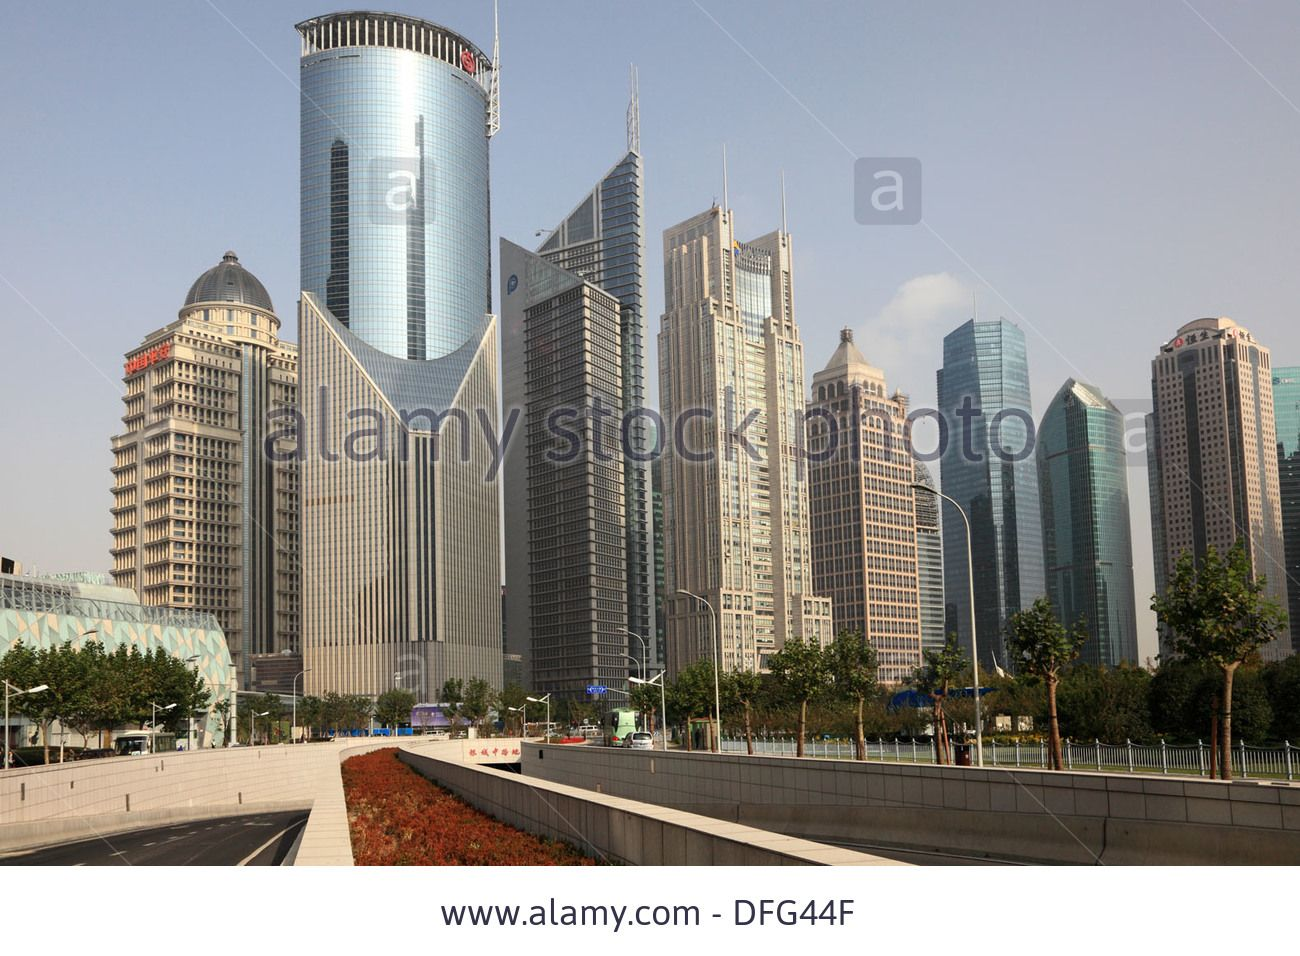 http://c8.alamy.com/comp/DFG44F/highrise-buildings-downtown-in-pudong-shanghai-china-DFG44F.jpg